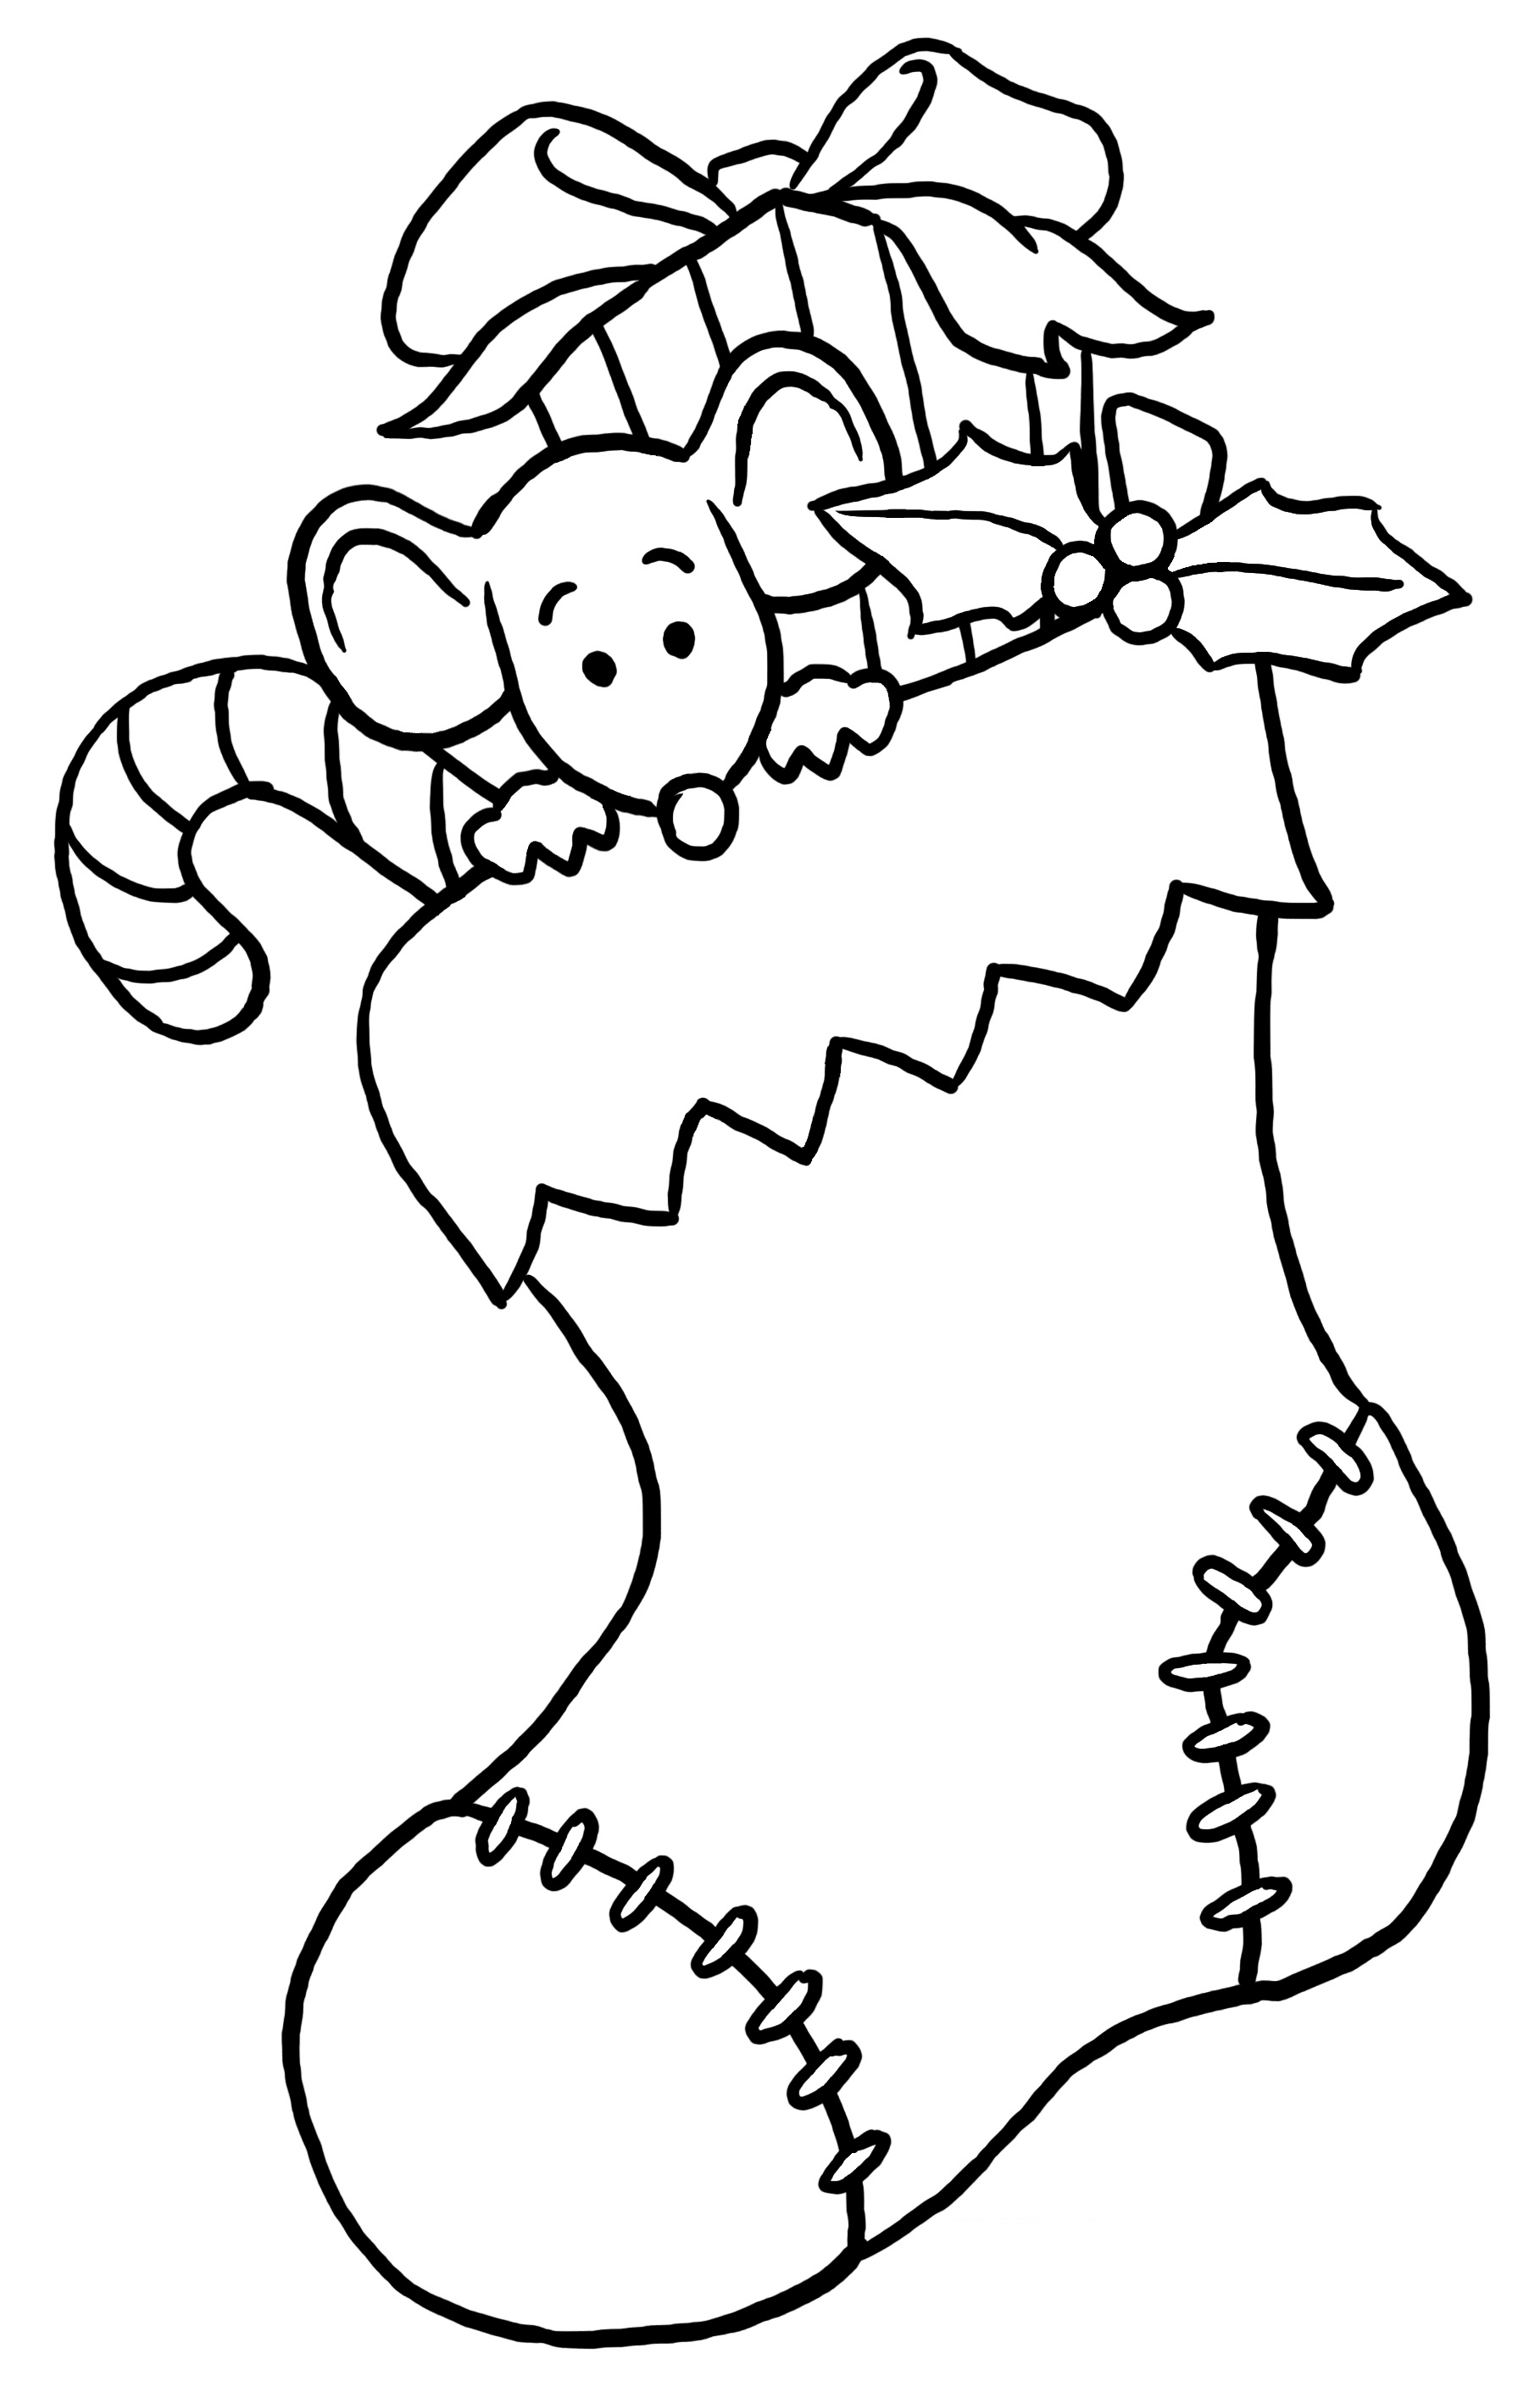 Marvelous Free Printable Christmas Coloring Pages Poincianaparkelementary Com Easy Diy Christmas Decorations Tissureus